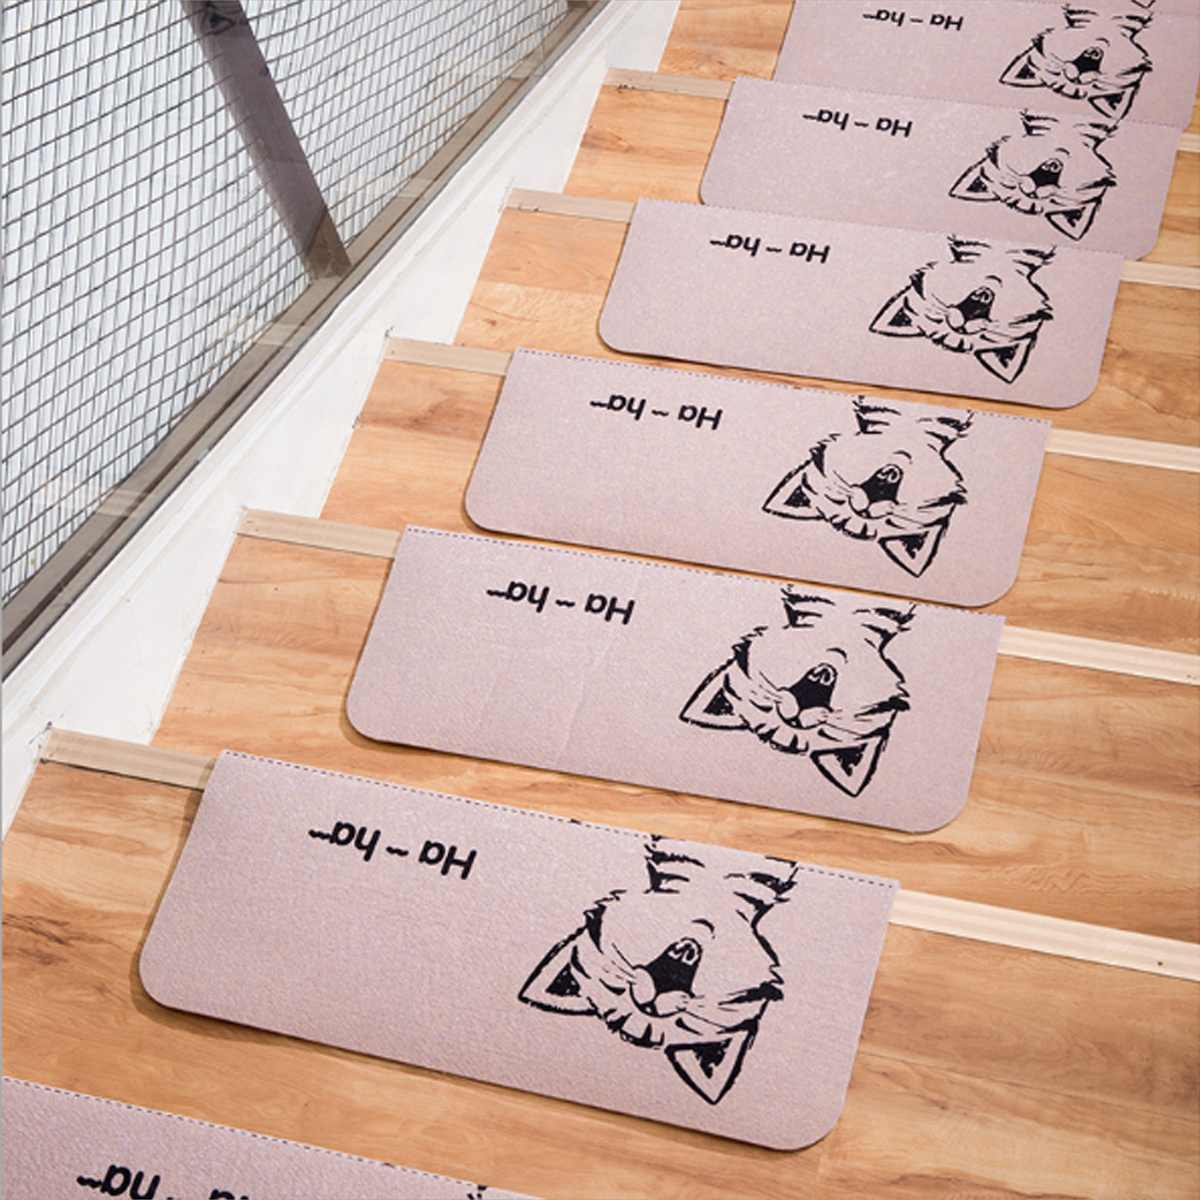 1/2/3/5pcs Washable Non-slip Stair Treads Self-adhesive Stair Mats Protector Rug Floor Staircase Carpets for Living Room